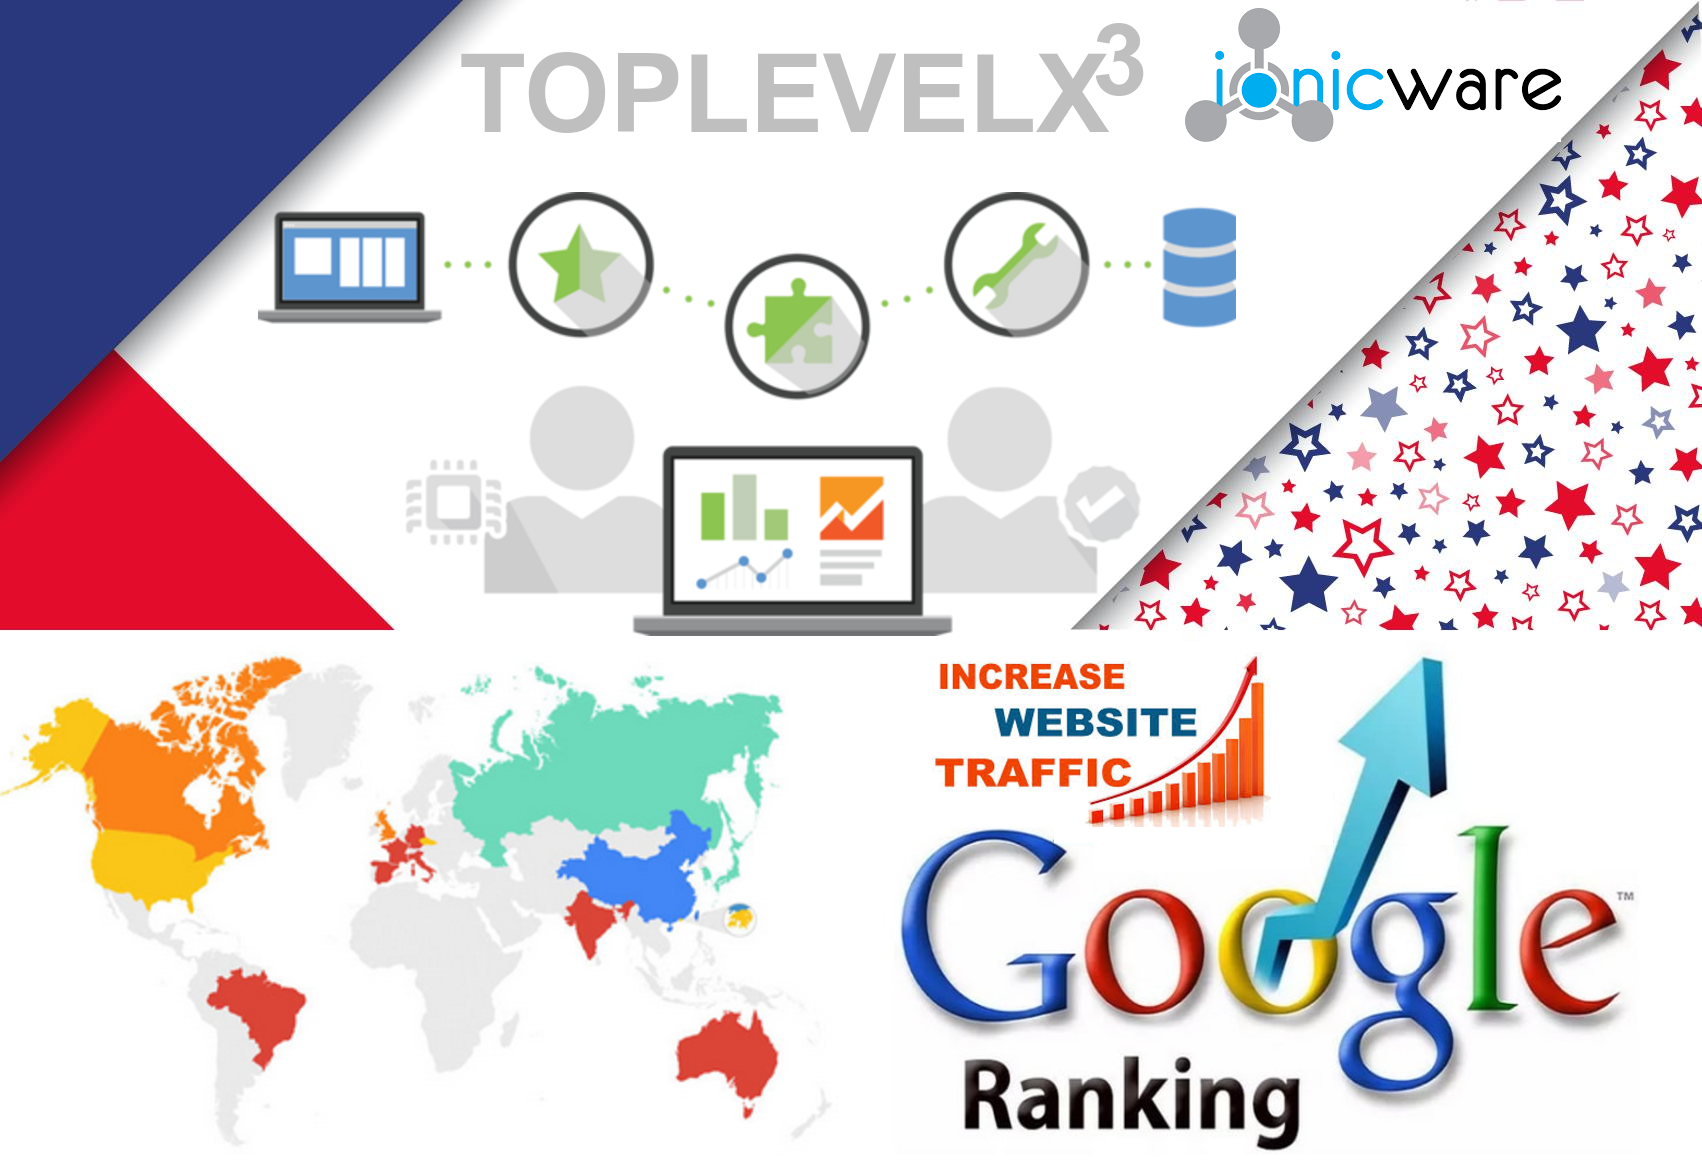 5,000 HQ Keywords Research Worldwide Website Analytics Quality Traffic Improvement Google Rankings